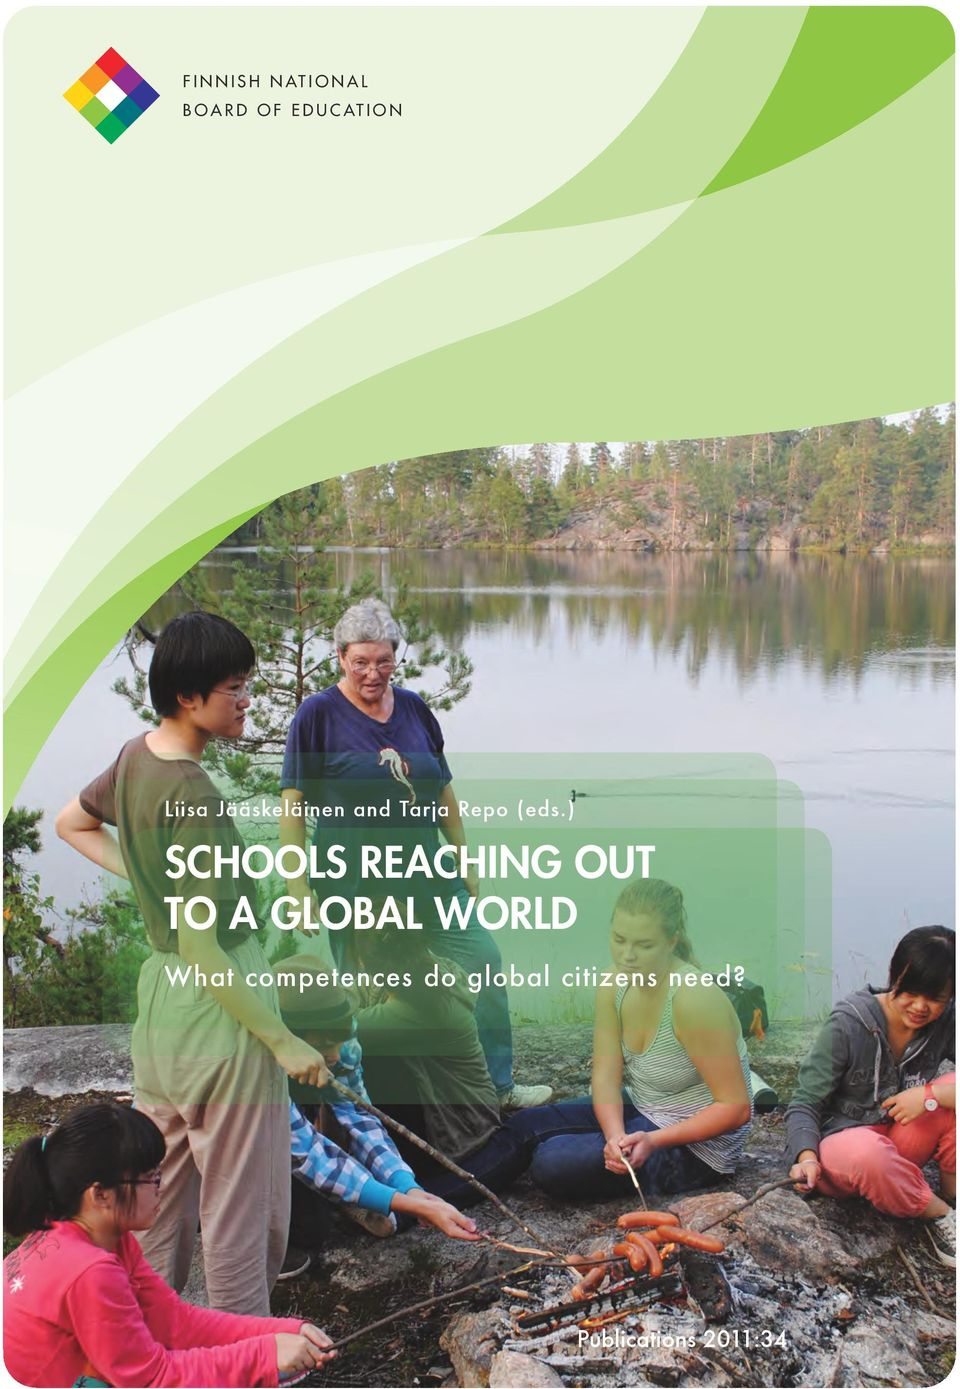 ) SCHOOLS REACHING OUT TO A GLOBAL WORLD What